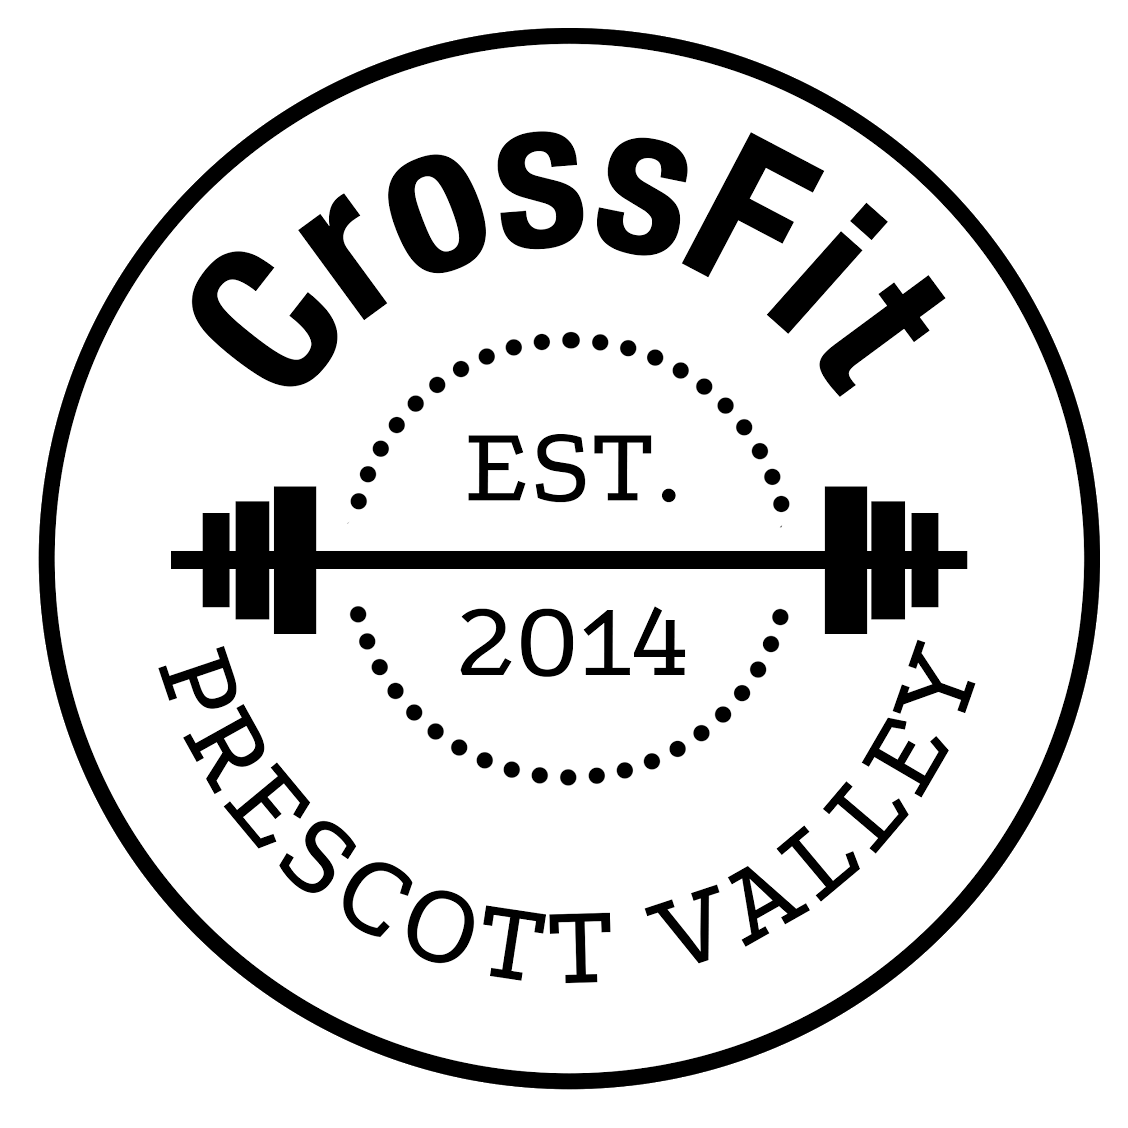 CrossFit Prescott Valley